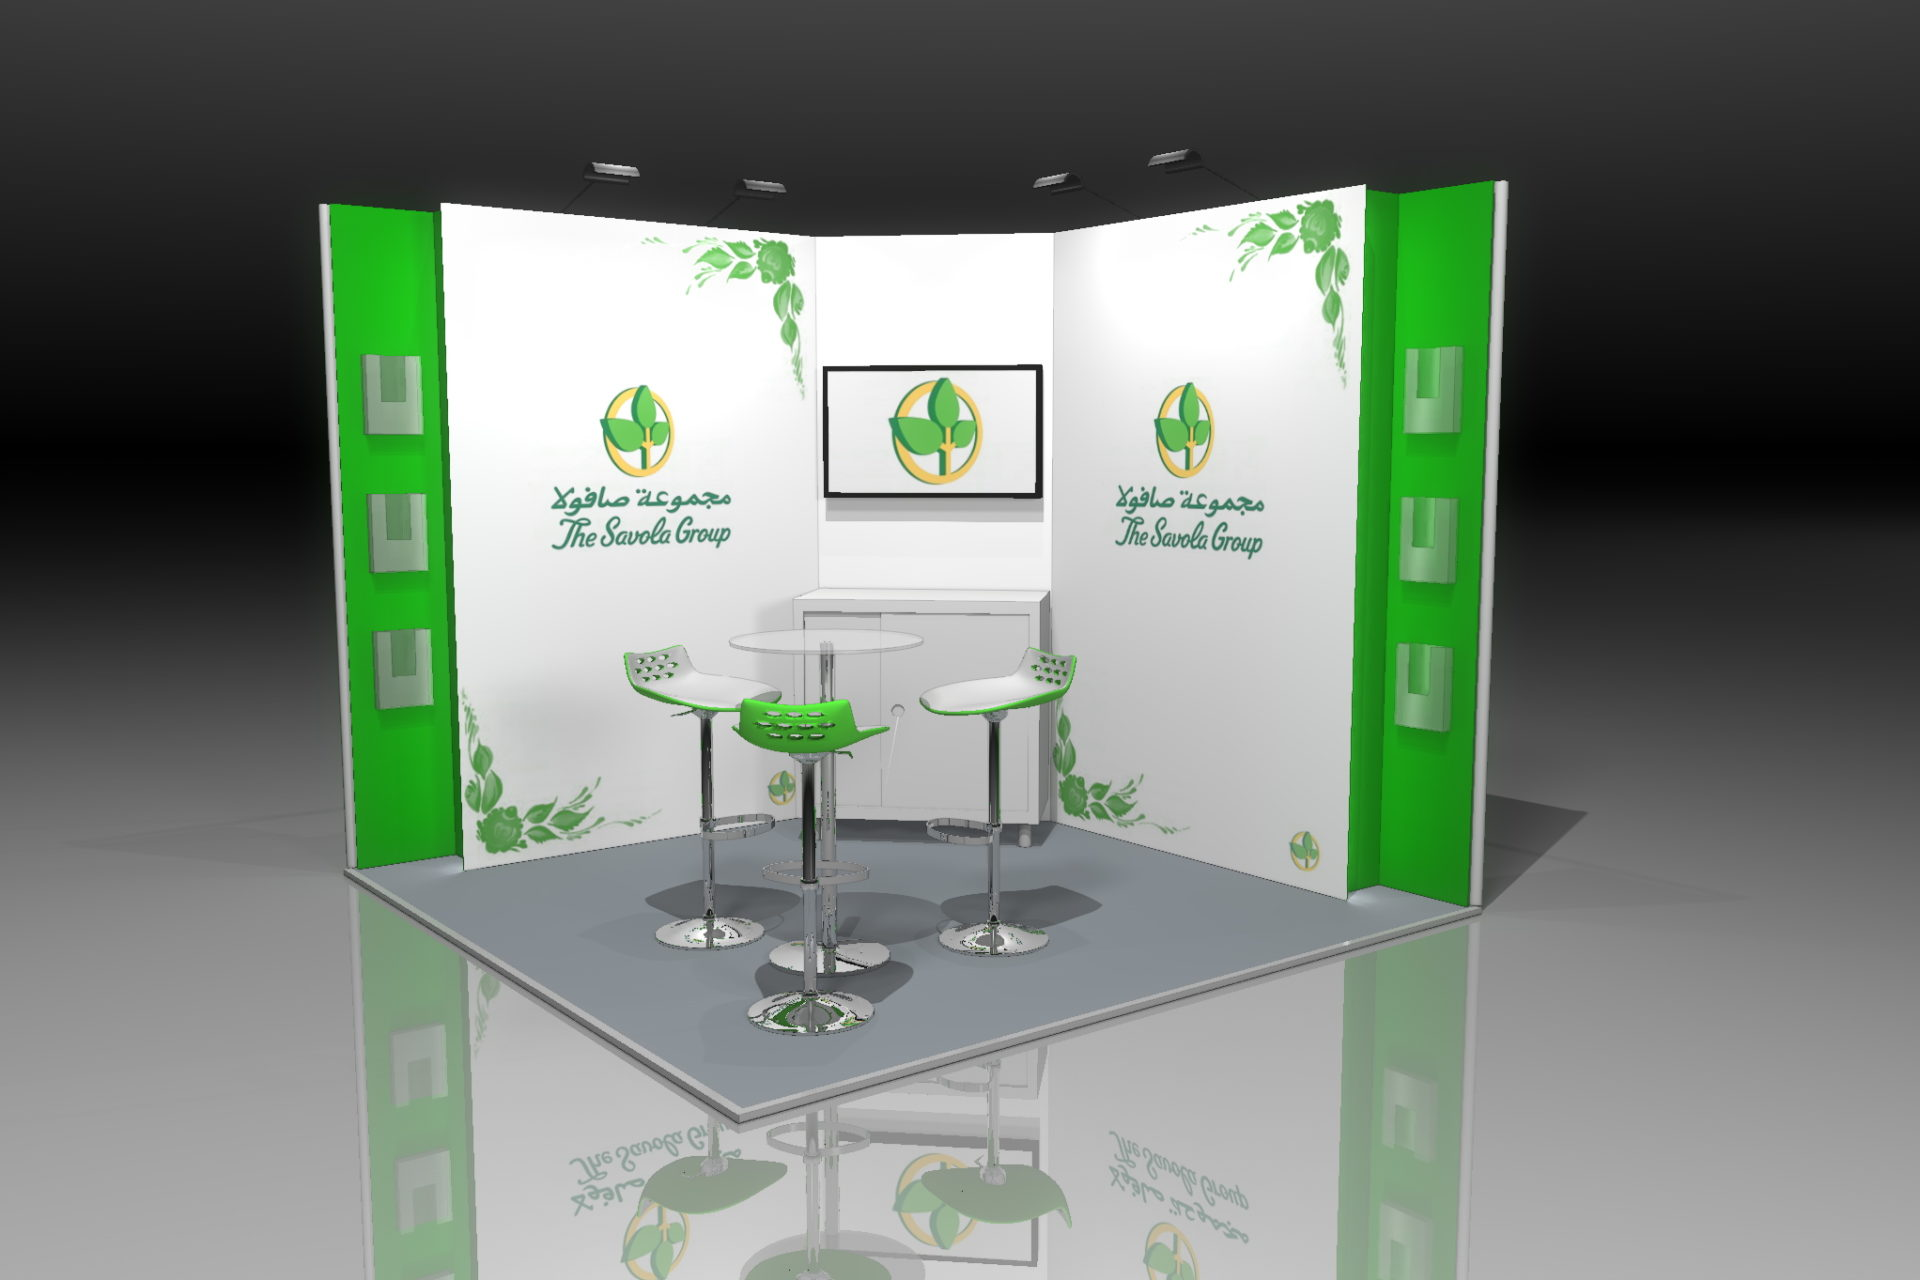 Small Exhibition Stand For : Stand portfolio exhibition services london modular